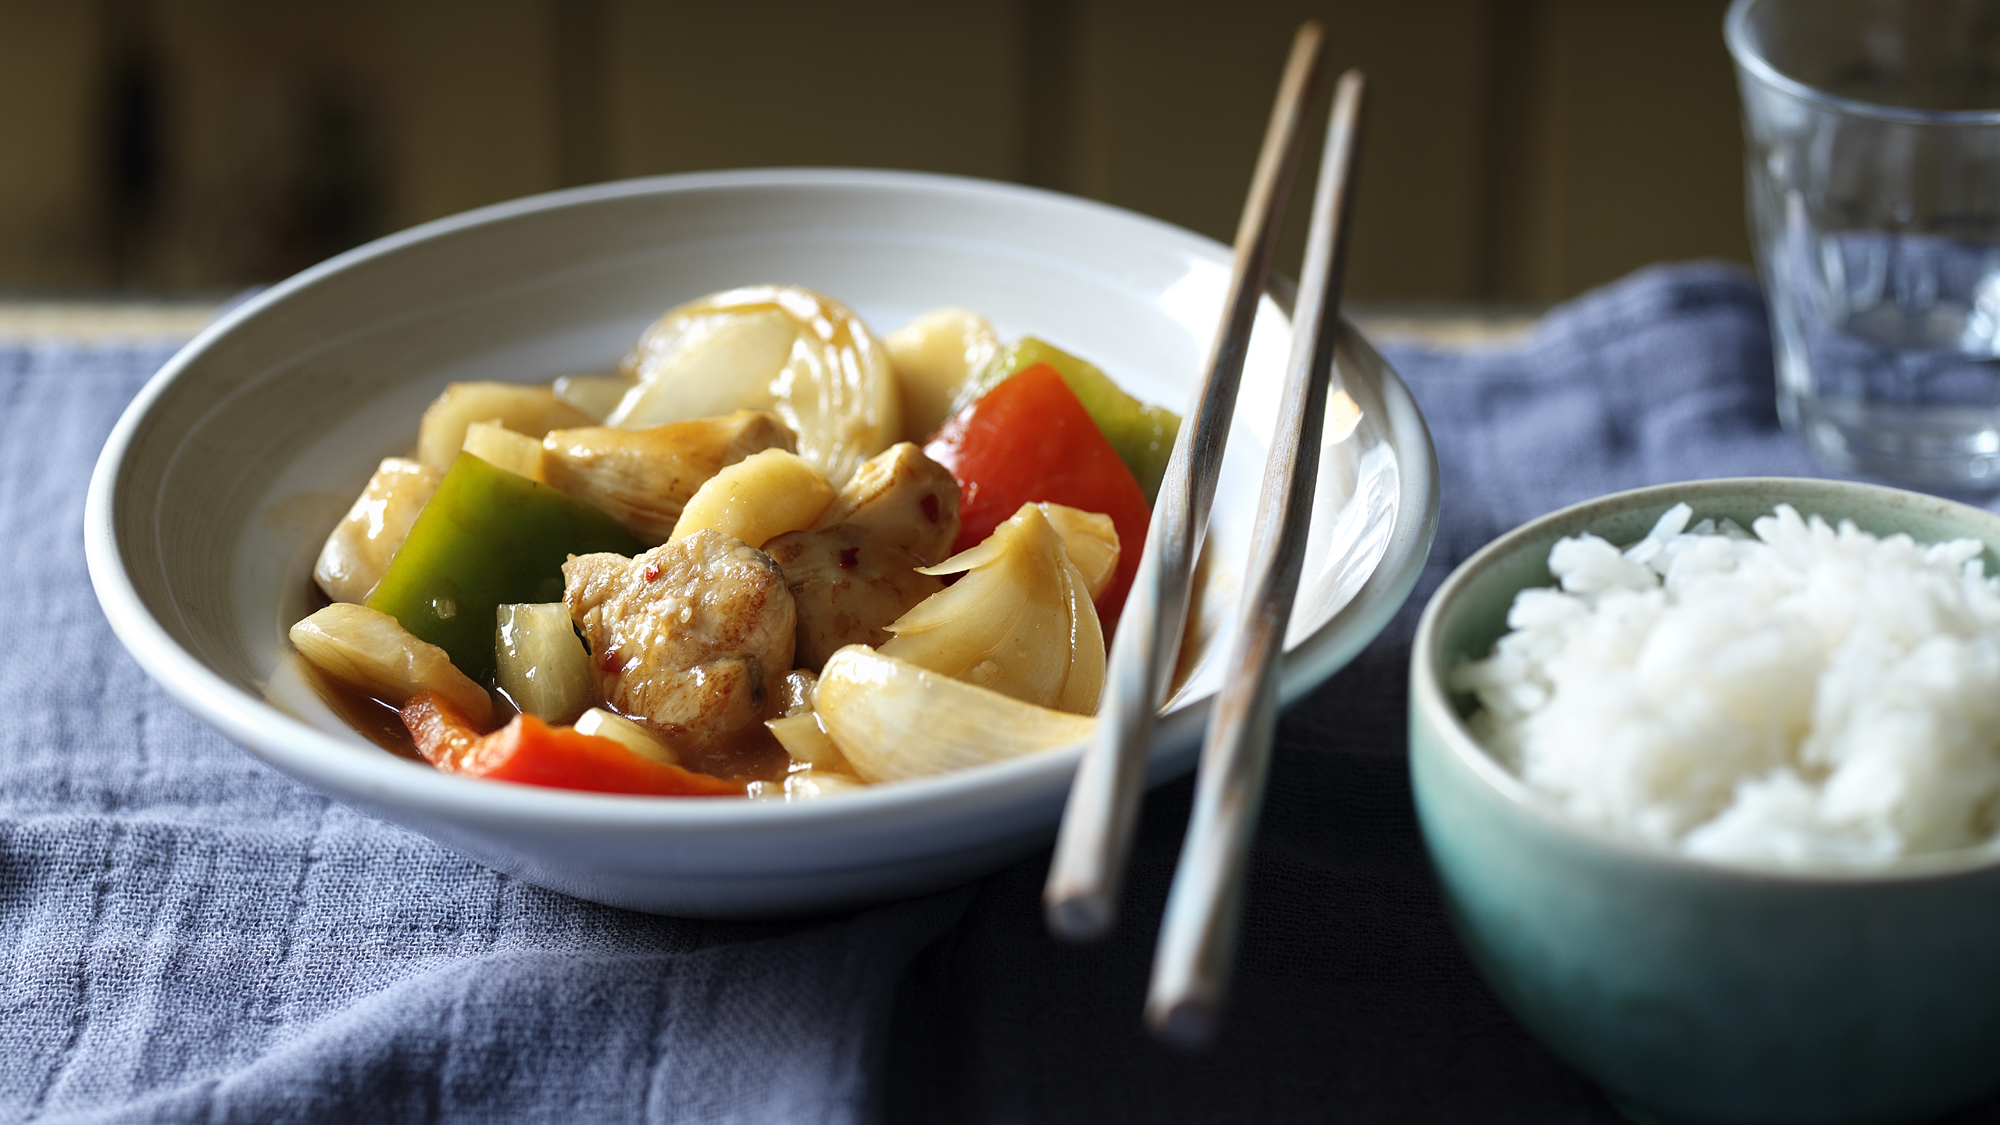 Bbc food recipes sweet and sour chicken sweet sour chicken recipe sweet sour chicken skewers with fruity noodles recipe bbc good food forumfinder Choice Image